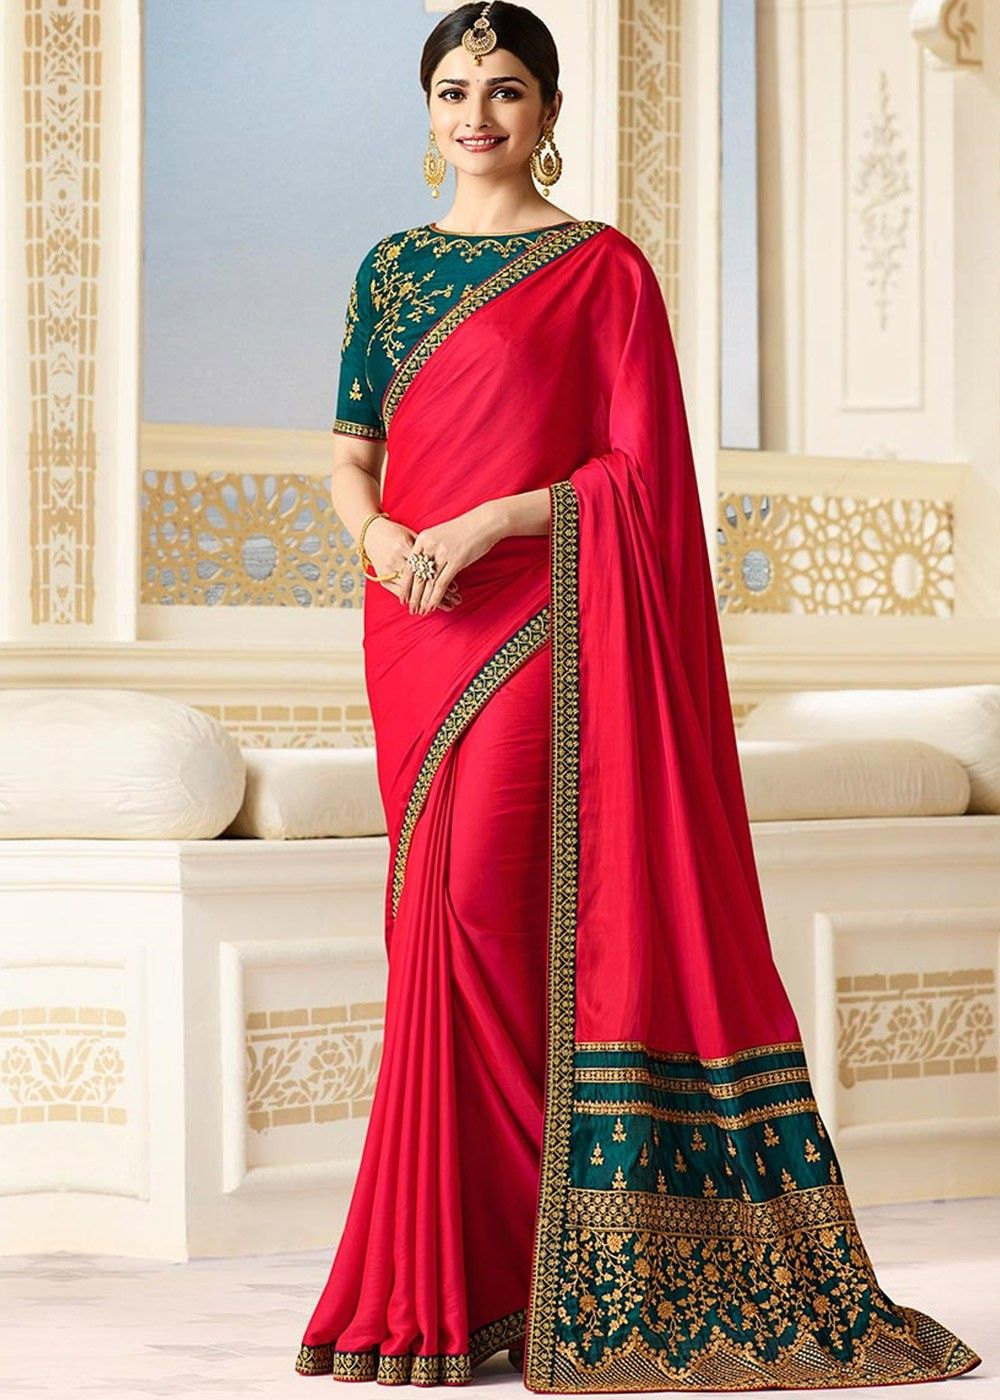 3c27738060a97e Prachi Desai Red Georgette Satin Saree with Embroidered Blouse in ...